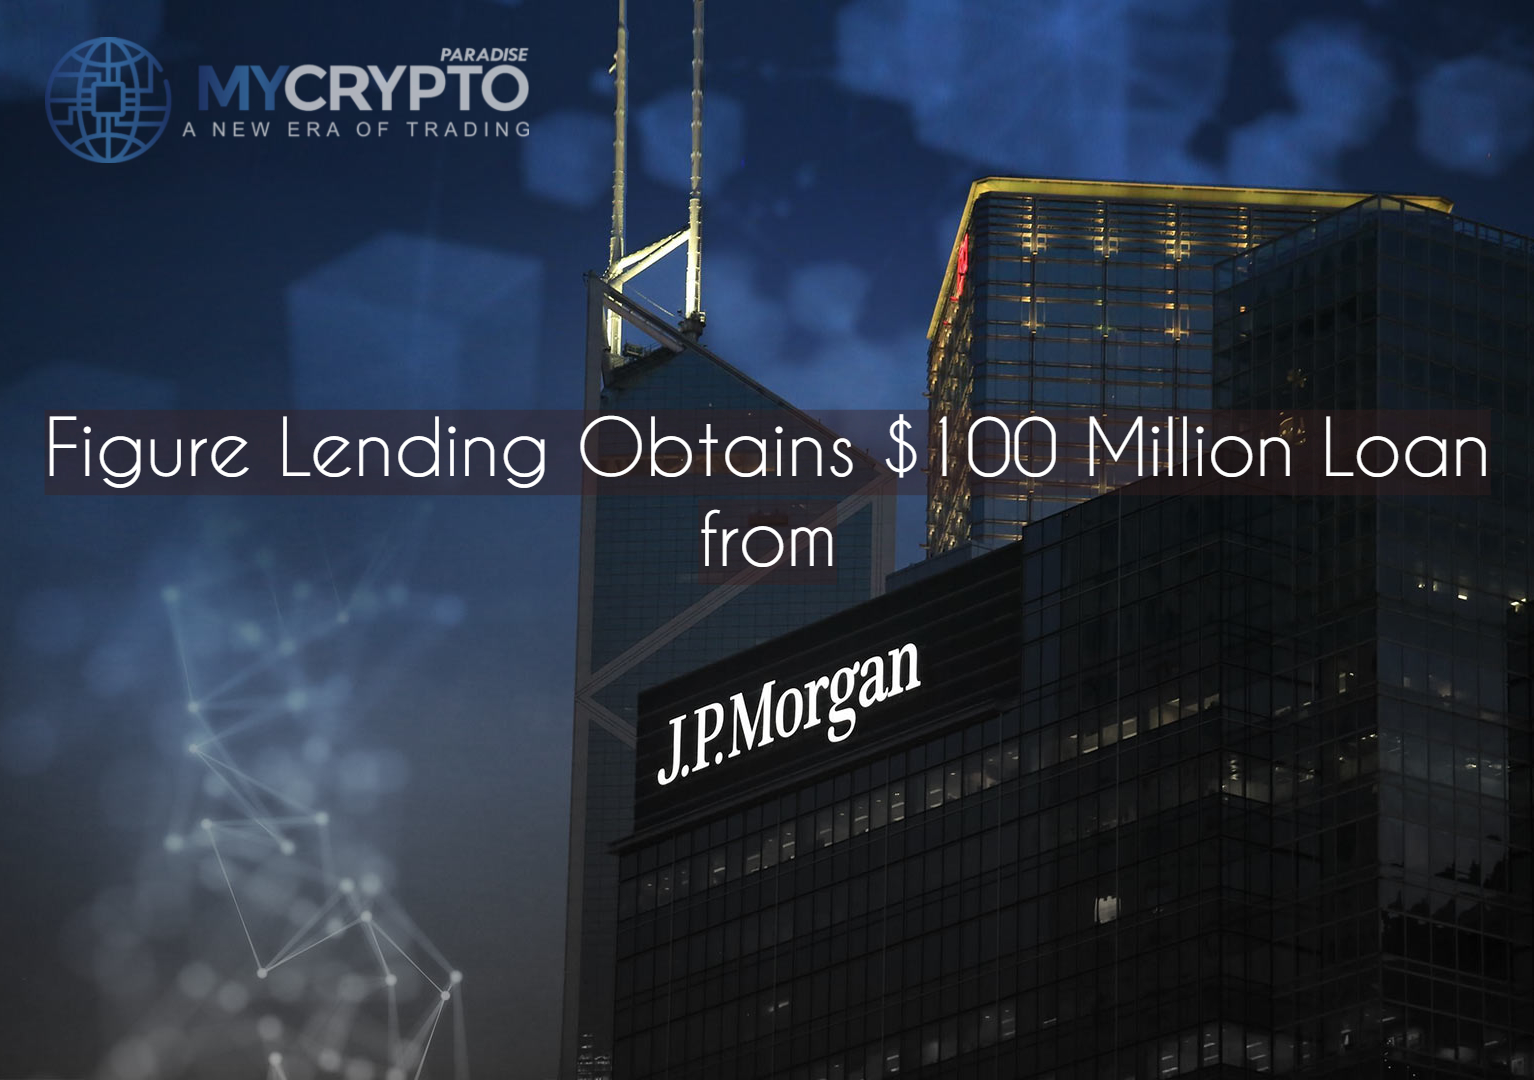 Figure Lending Obtains $100 Million Loan from JPMorgan